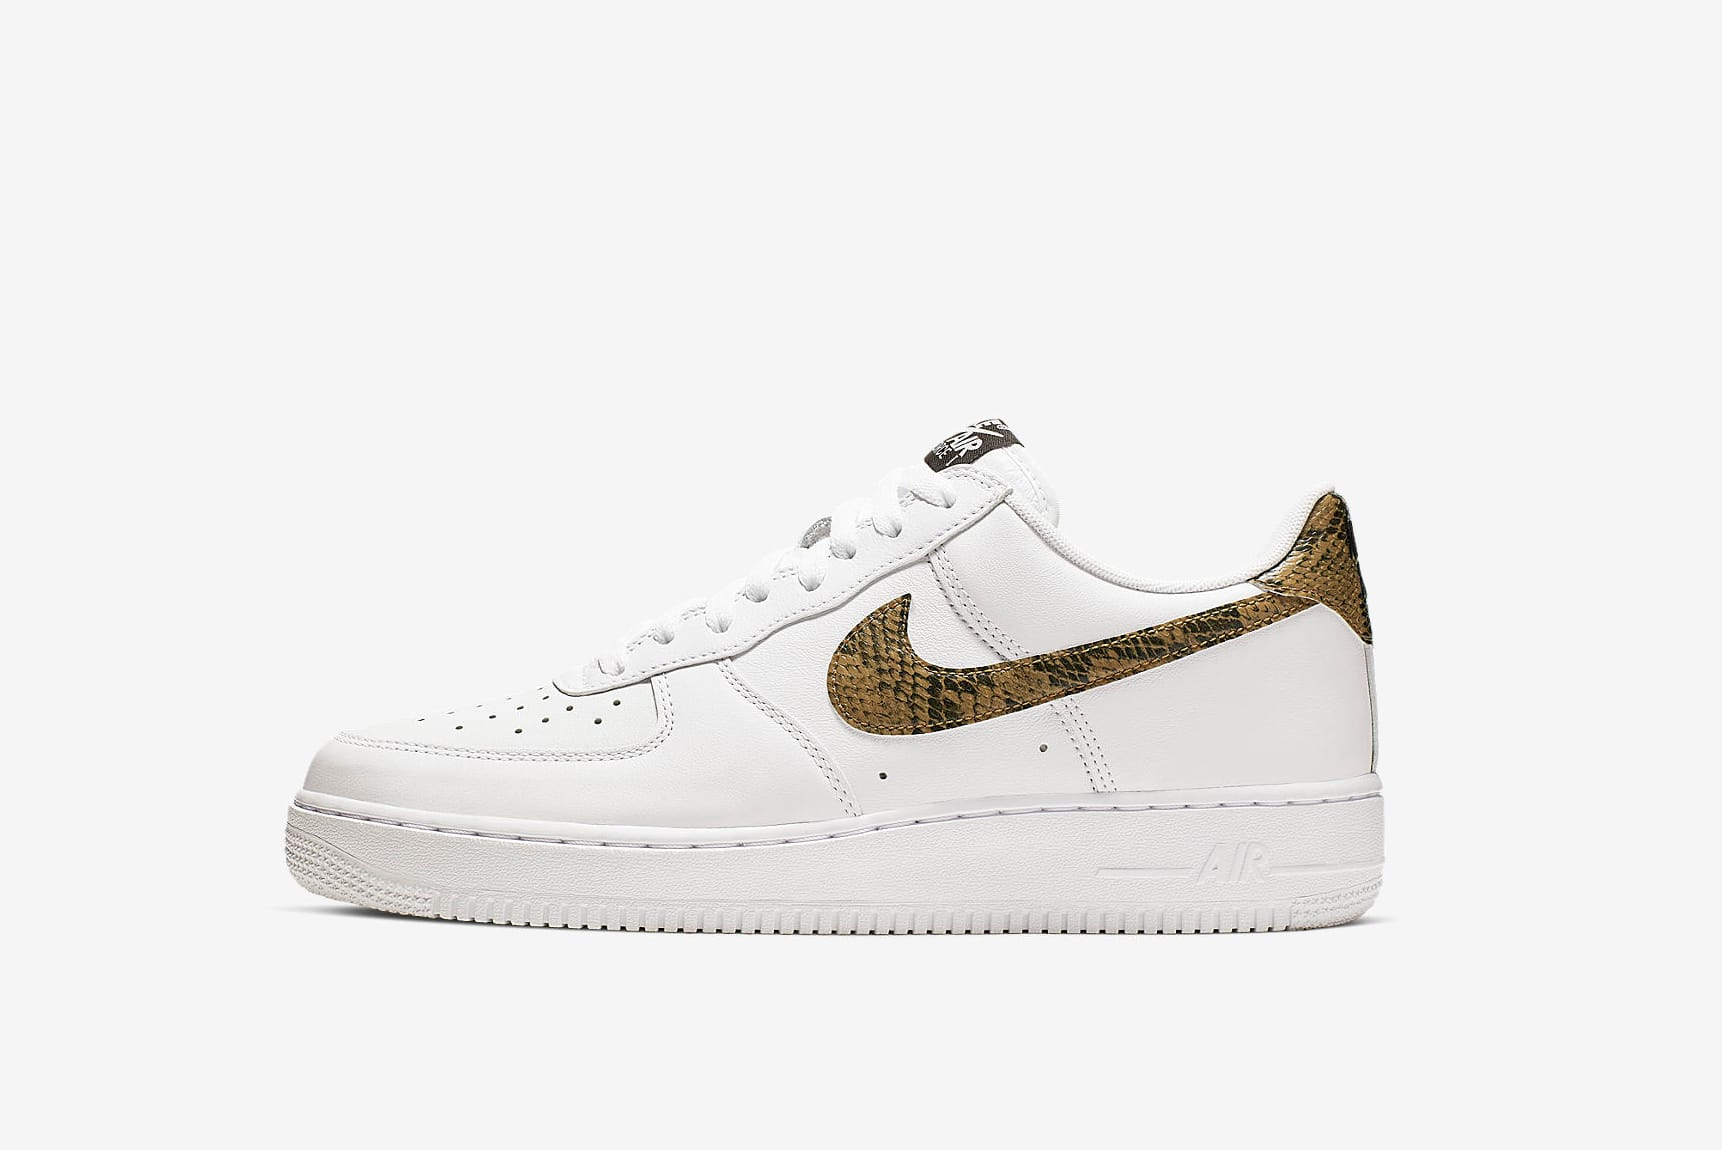 Nike Air Force 1 Low Retro - AO1635-100